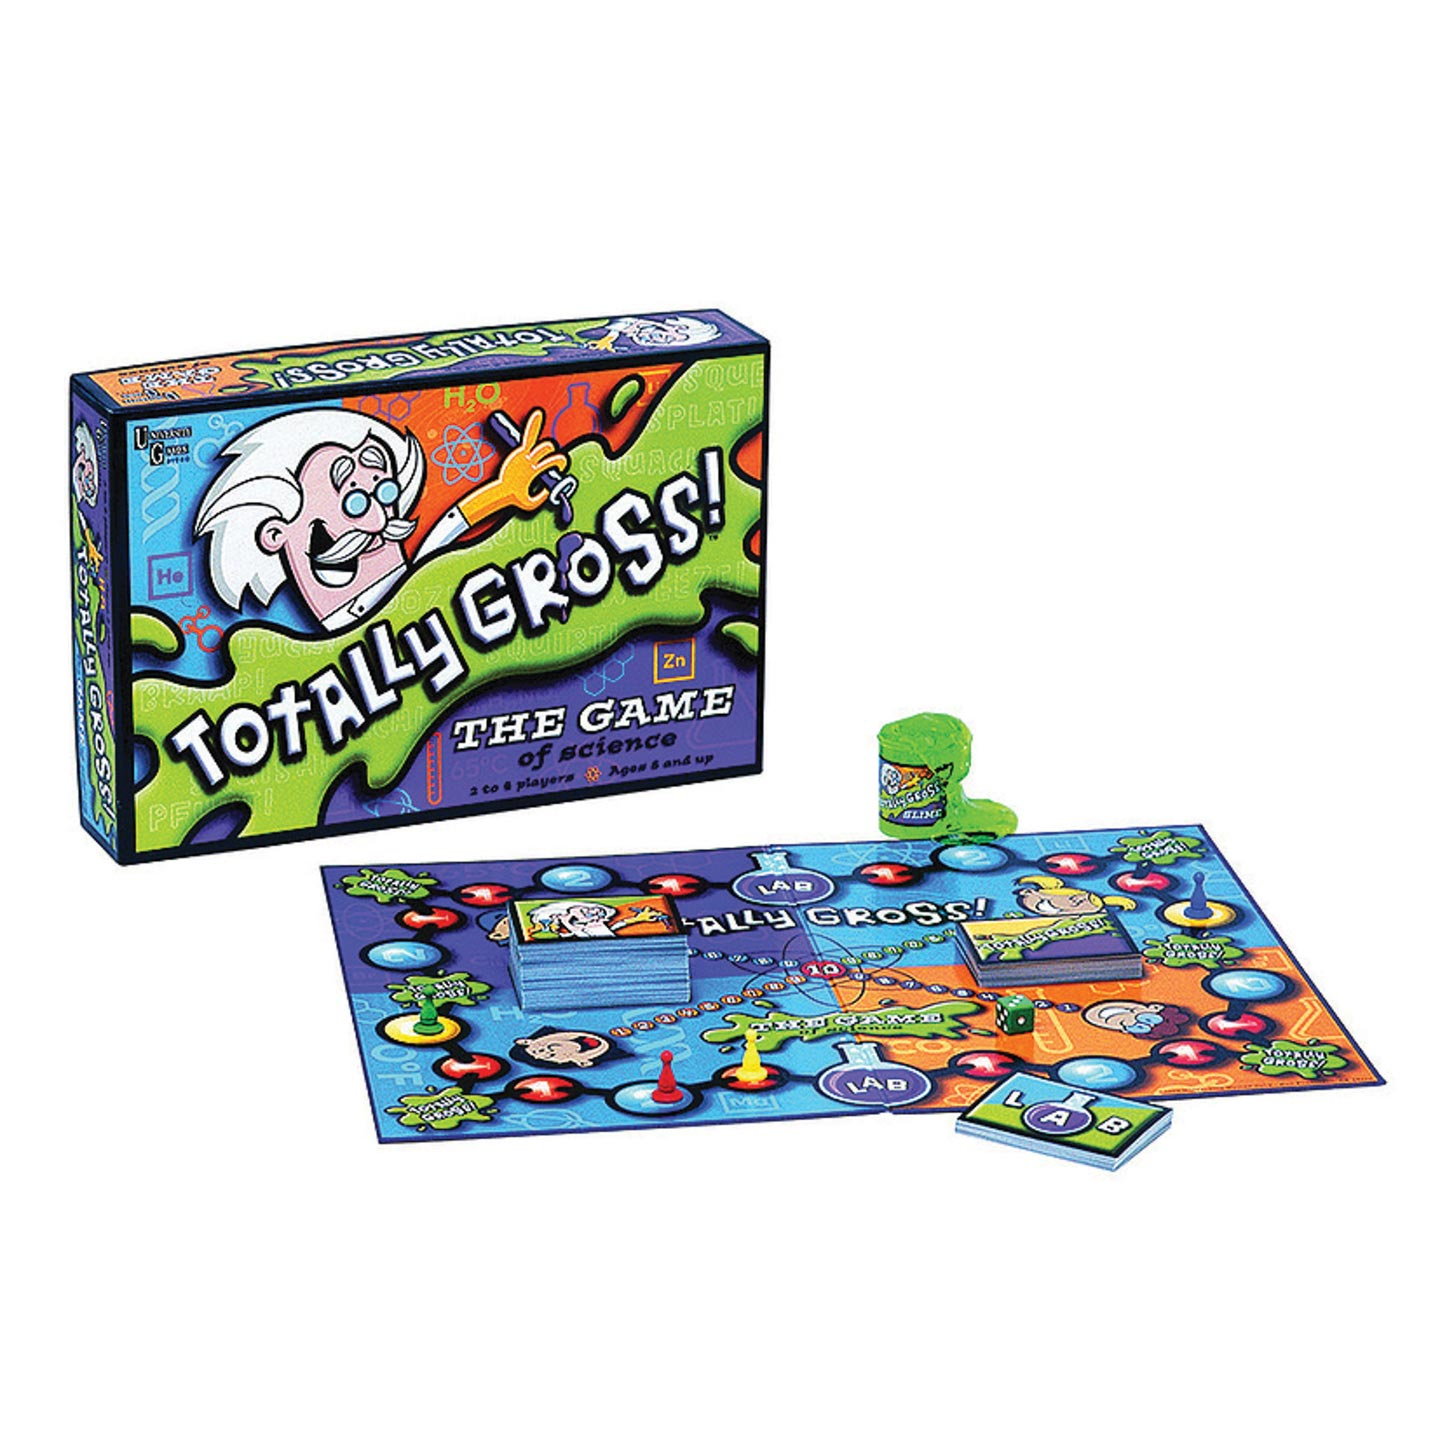 Totally Gross! The Game of Science Learning Game (Walmart)